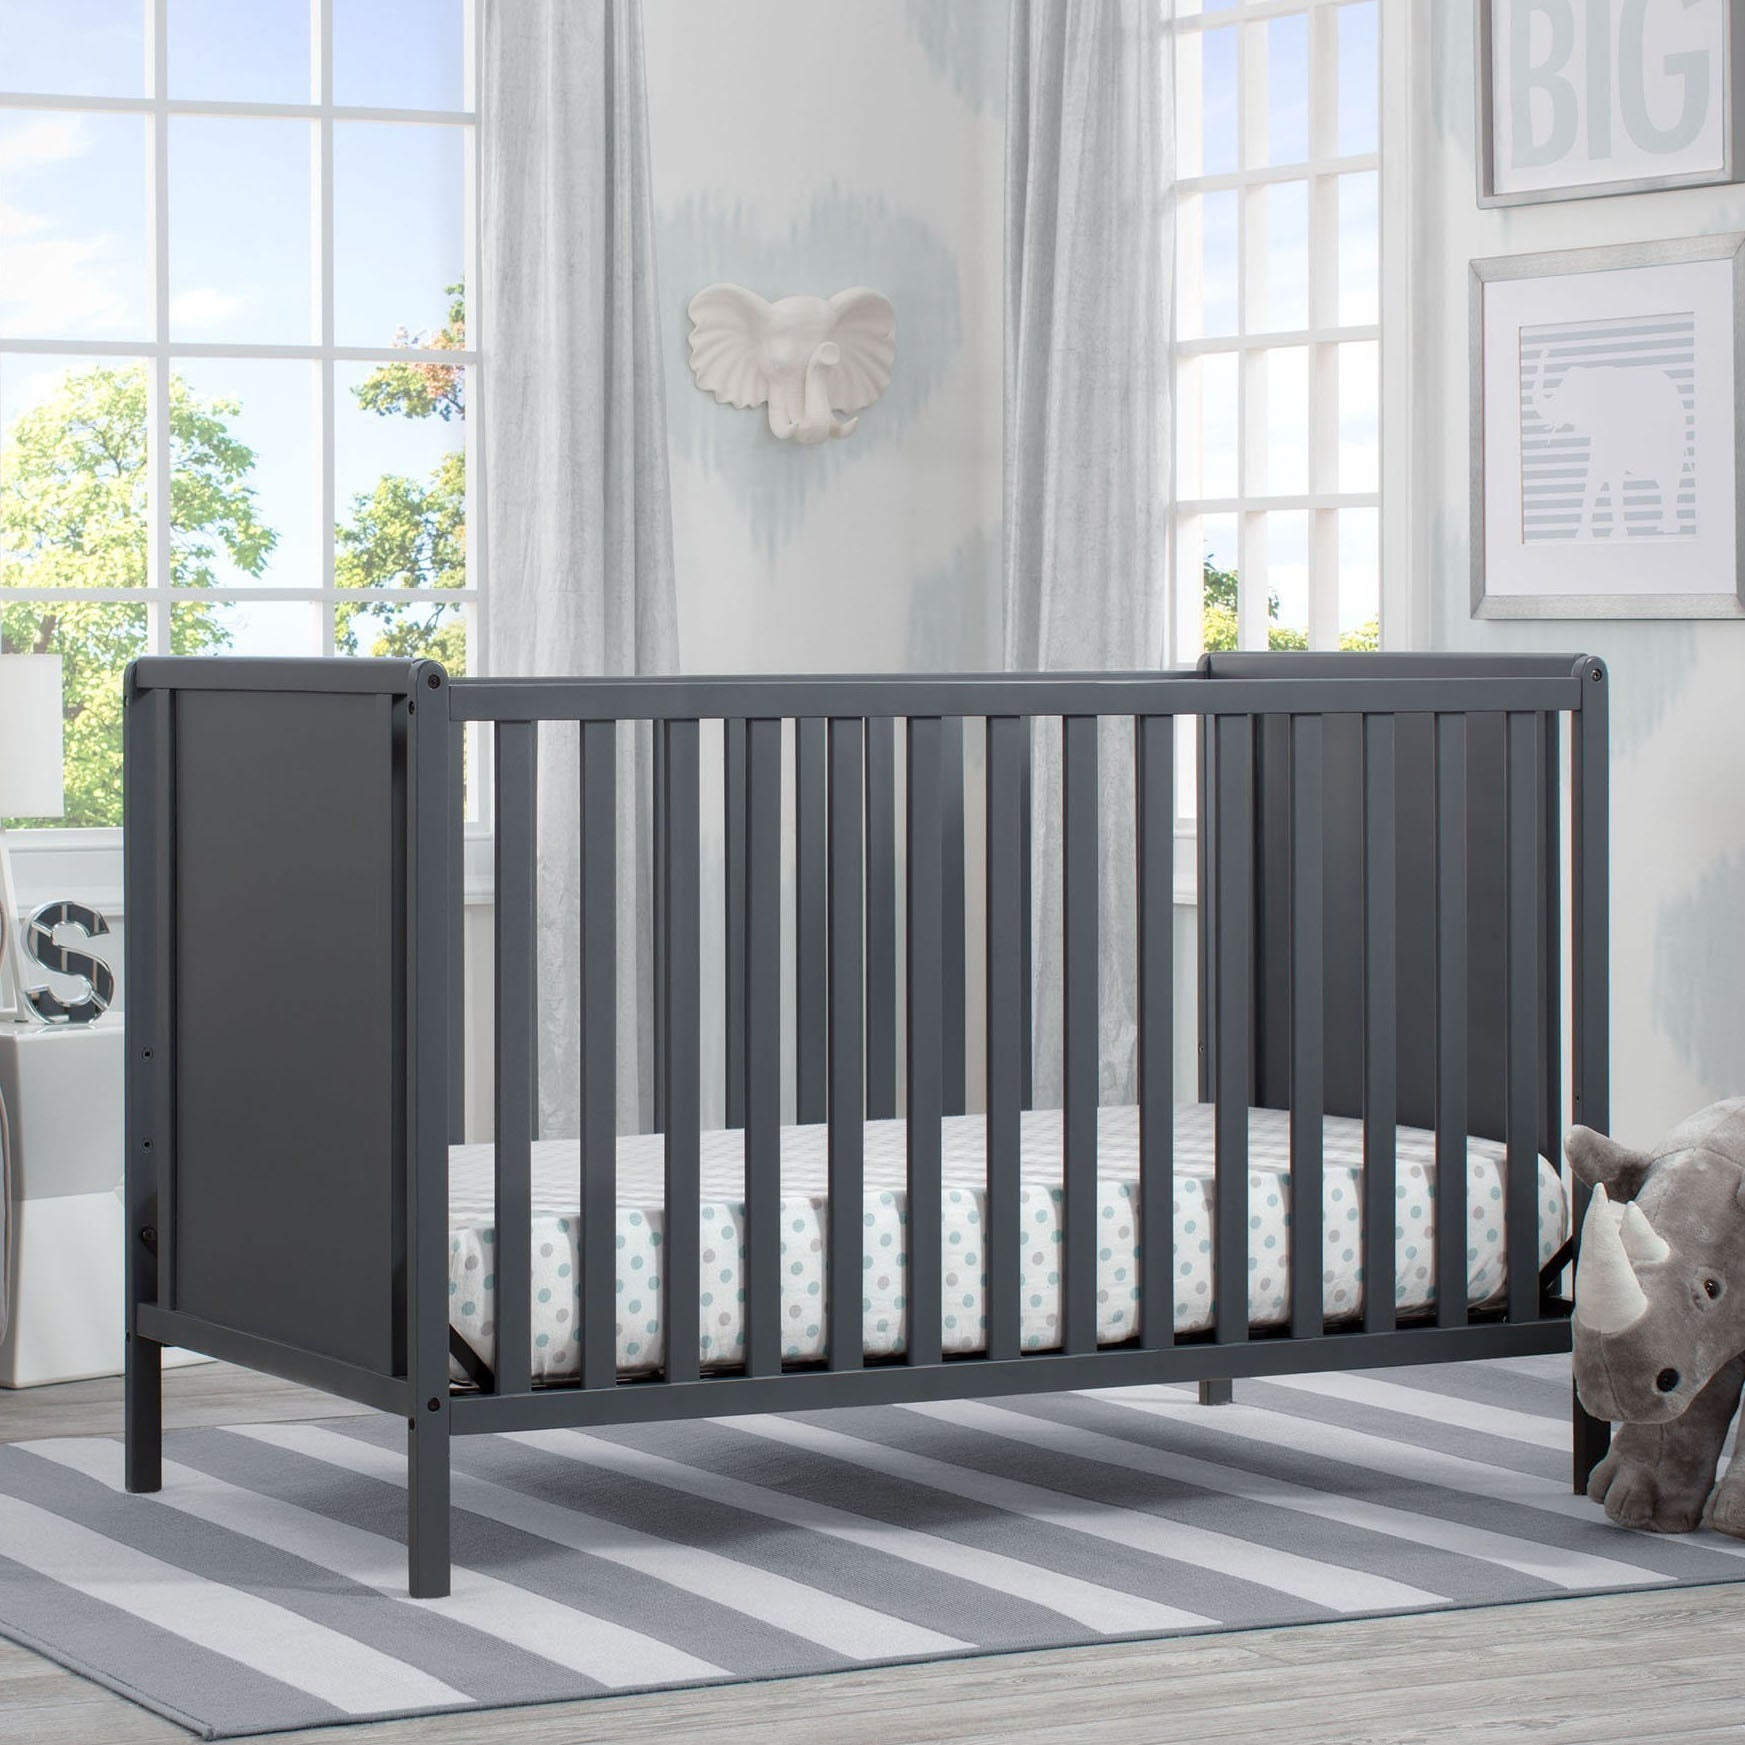 Heartland Classic 4-in-1 Convertible Crib